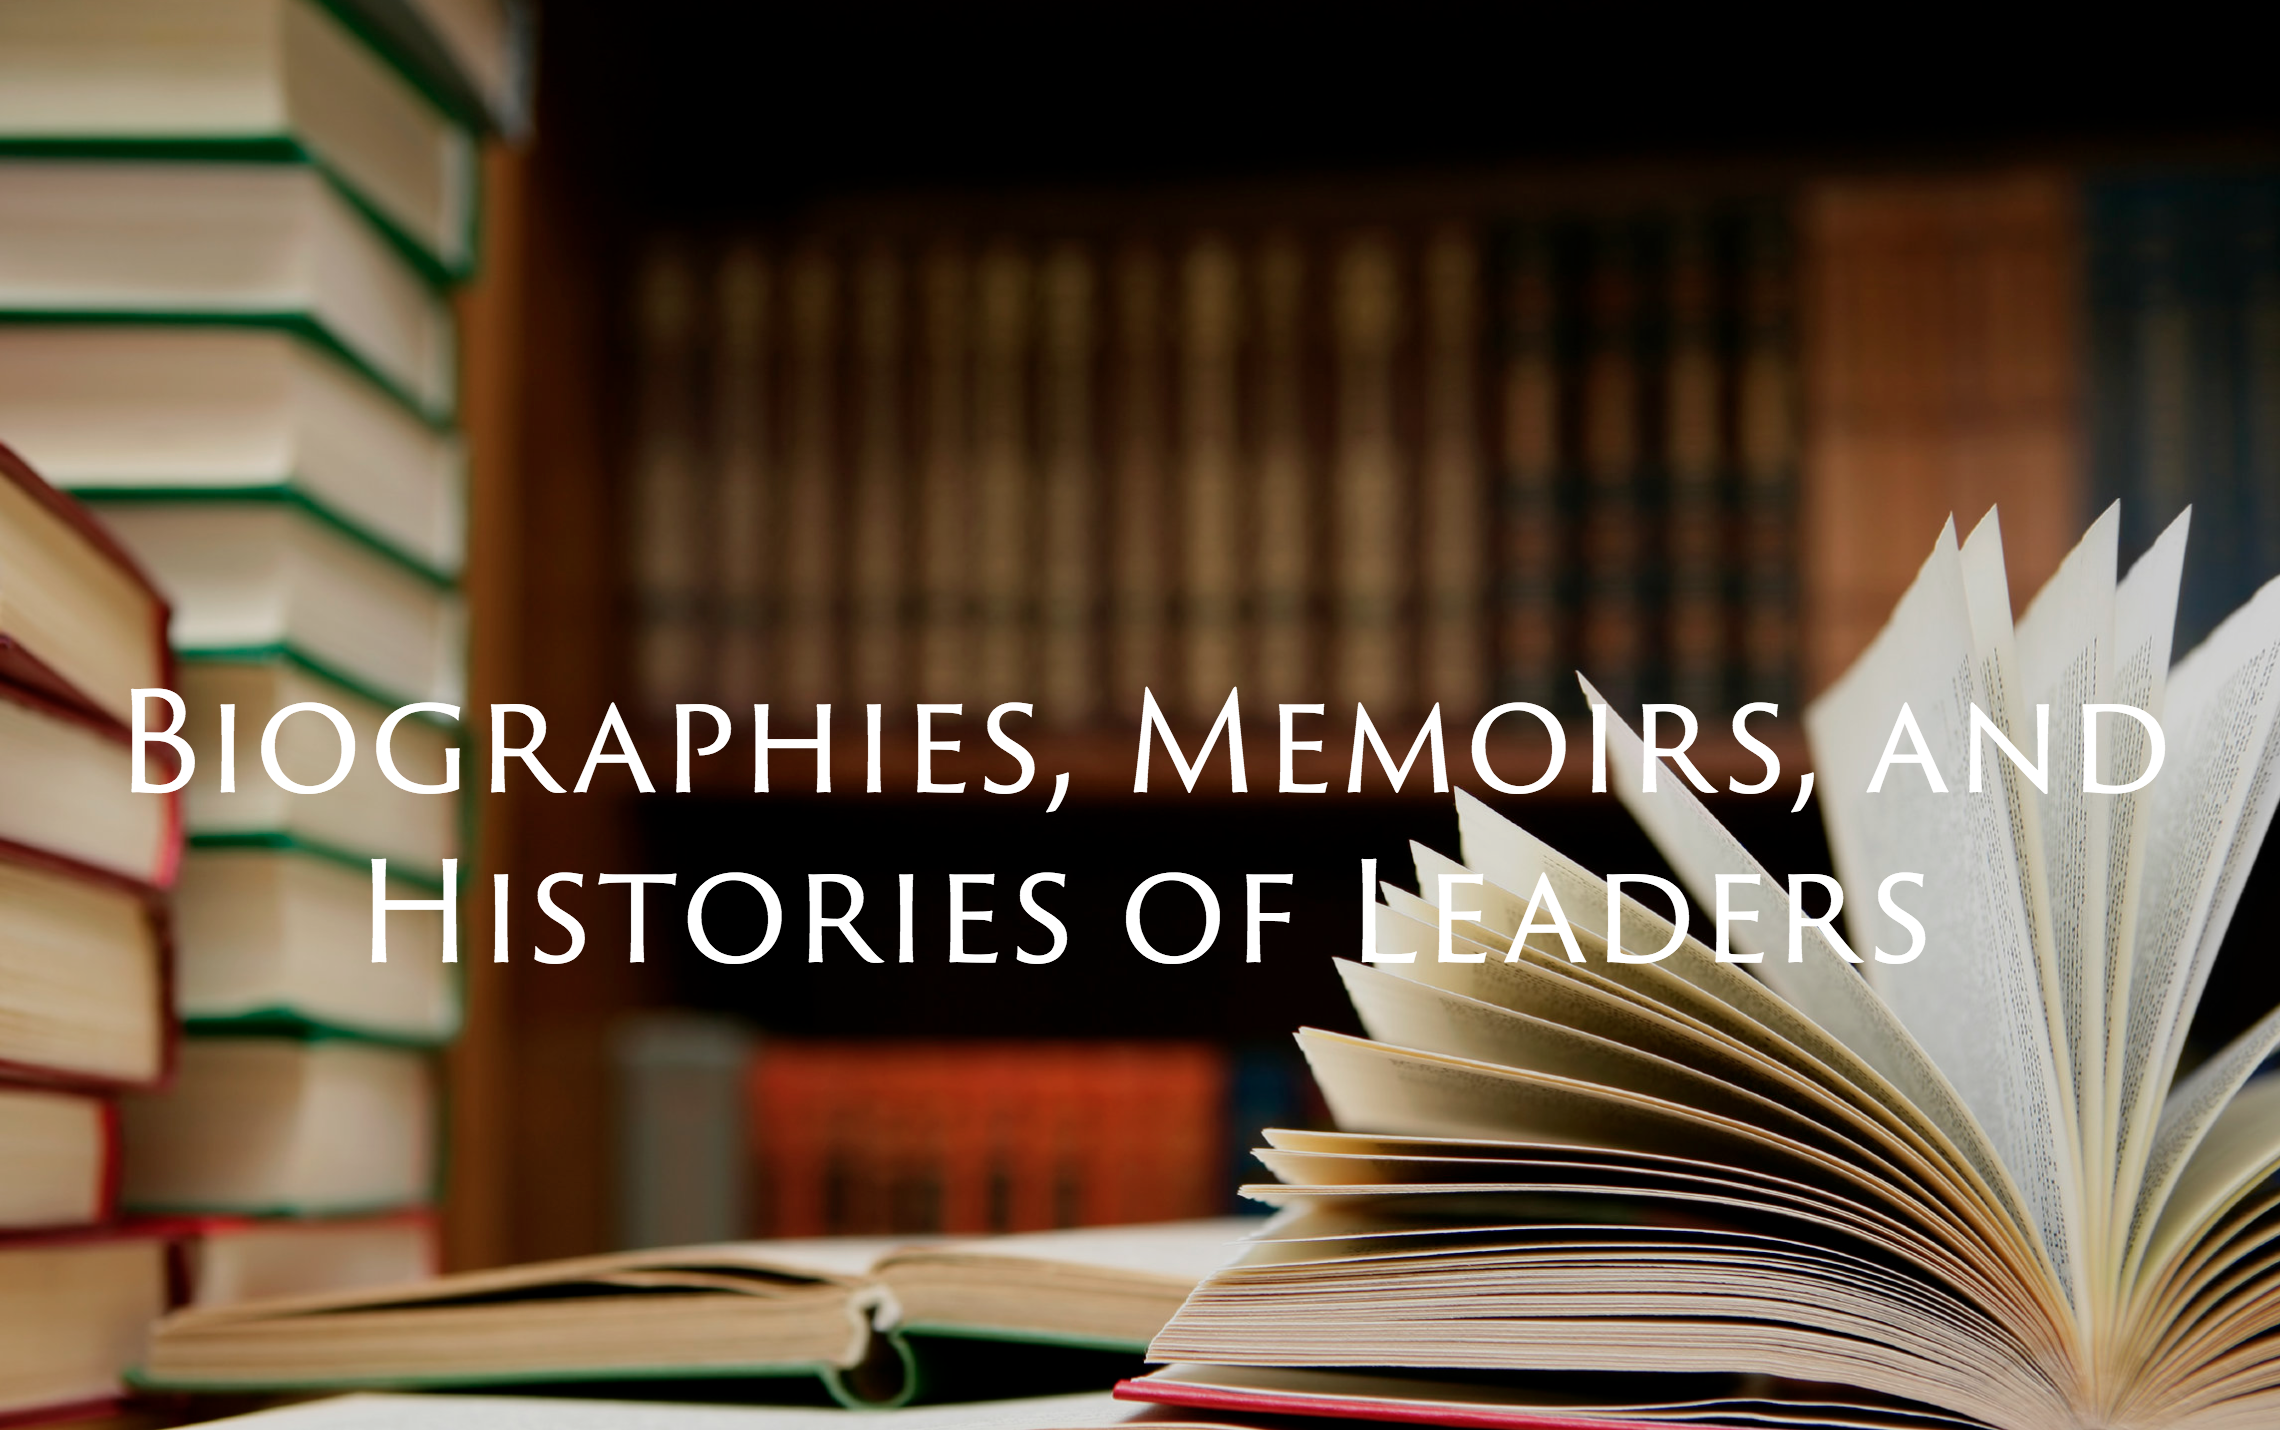 Biographies, Memoirs, and Histories of Leaders